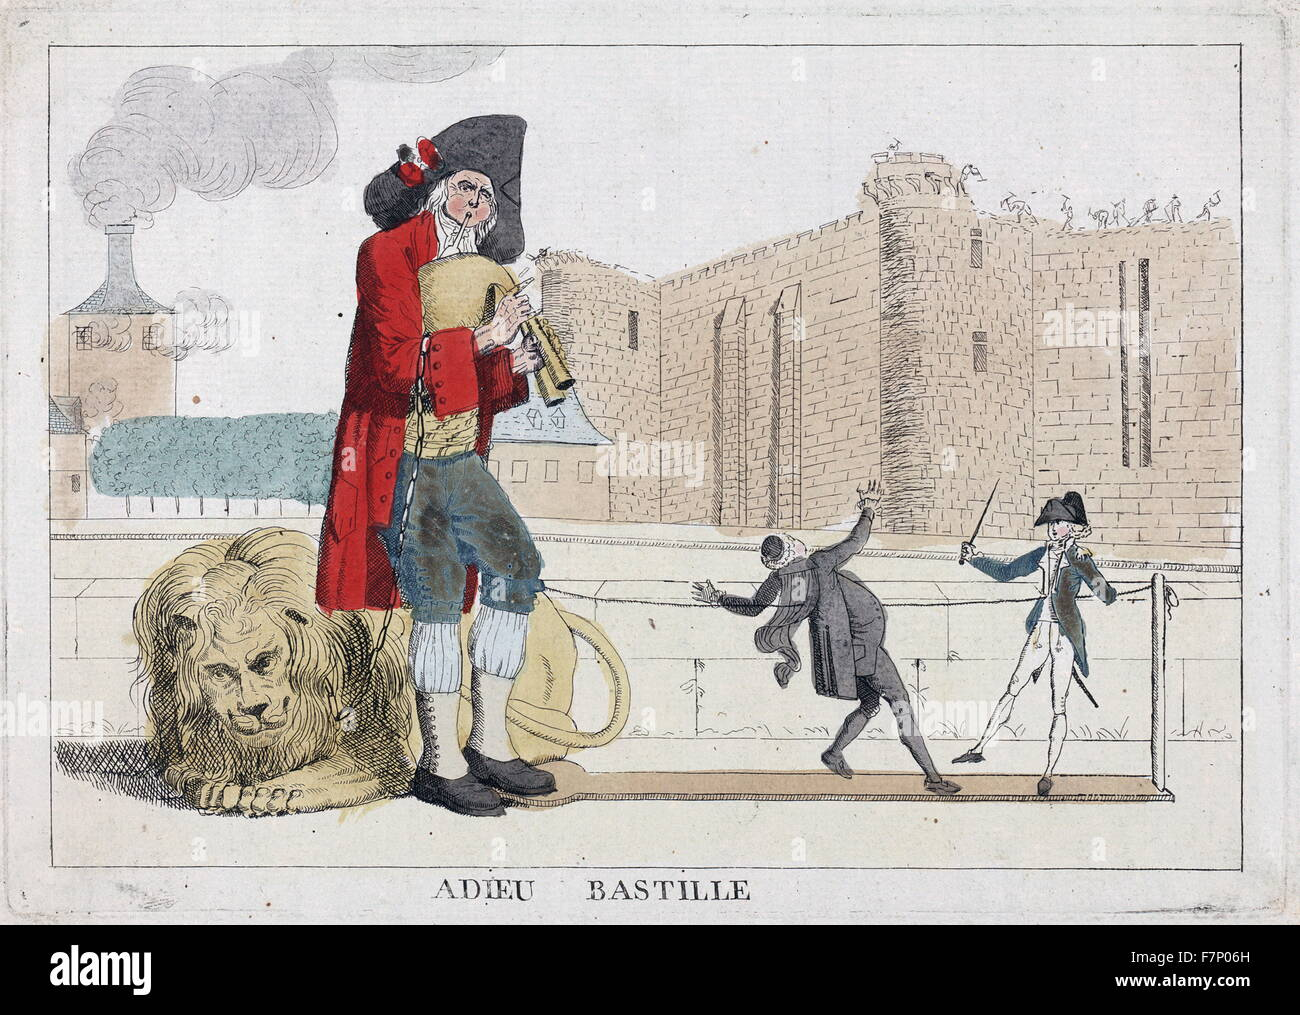 Adieu Bastille. Published 1789. etching, hand-coloured. Print shows a man playing a bagpipe, behind him lies a lion - Stock Image